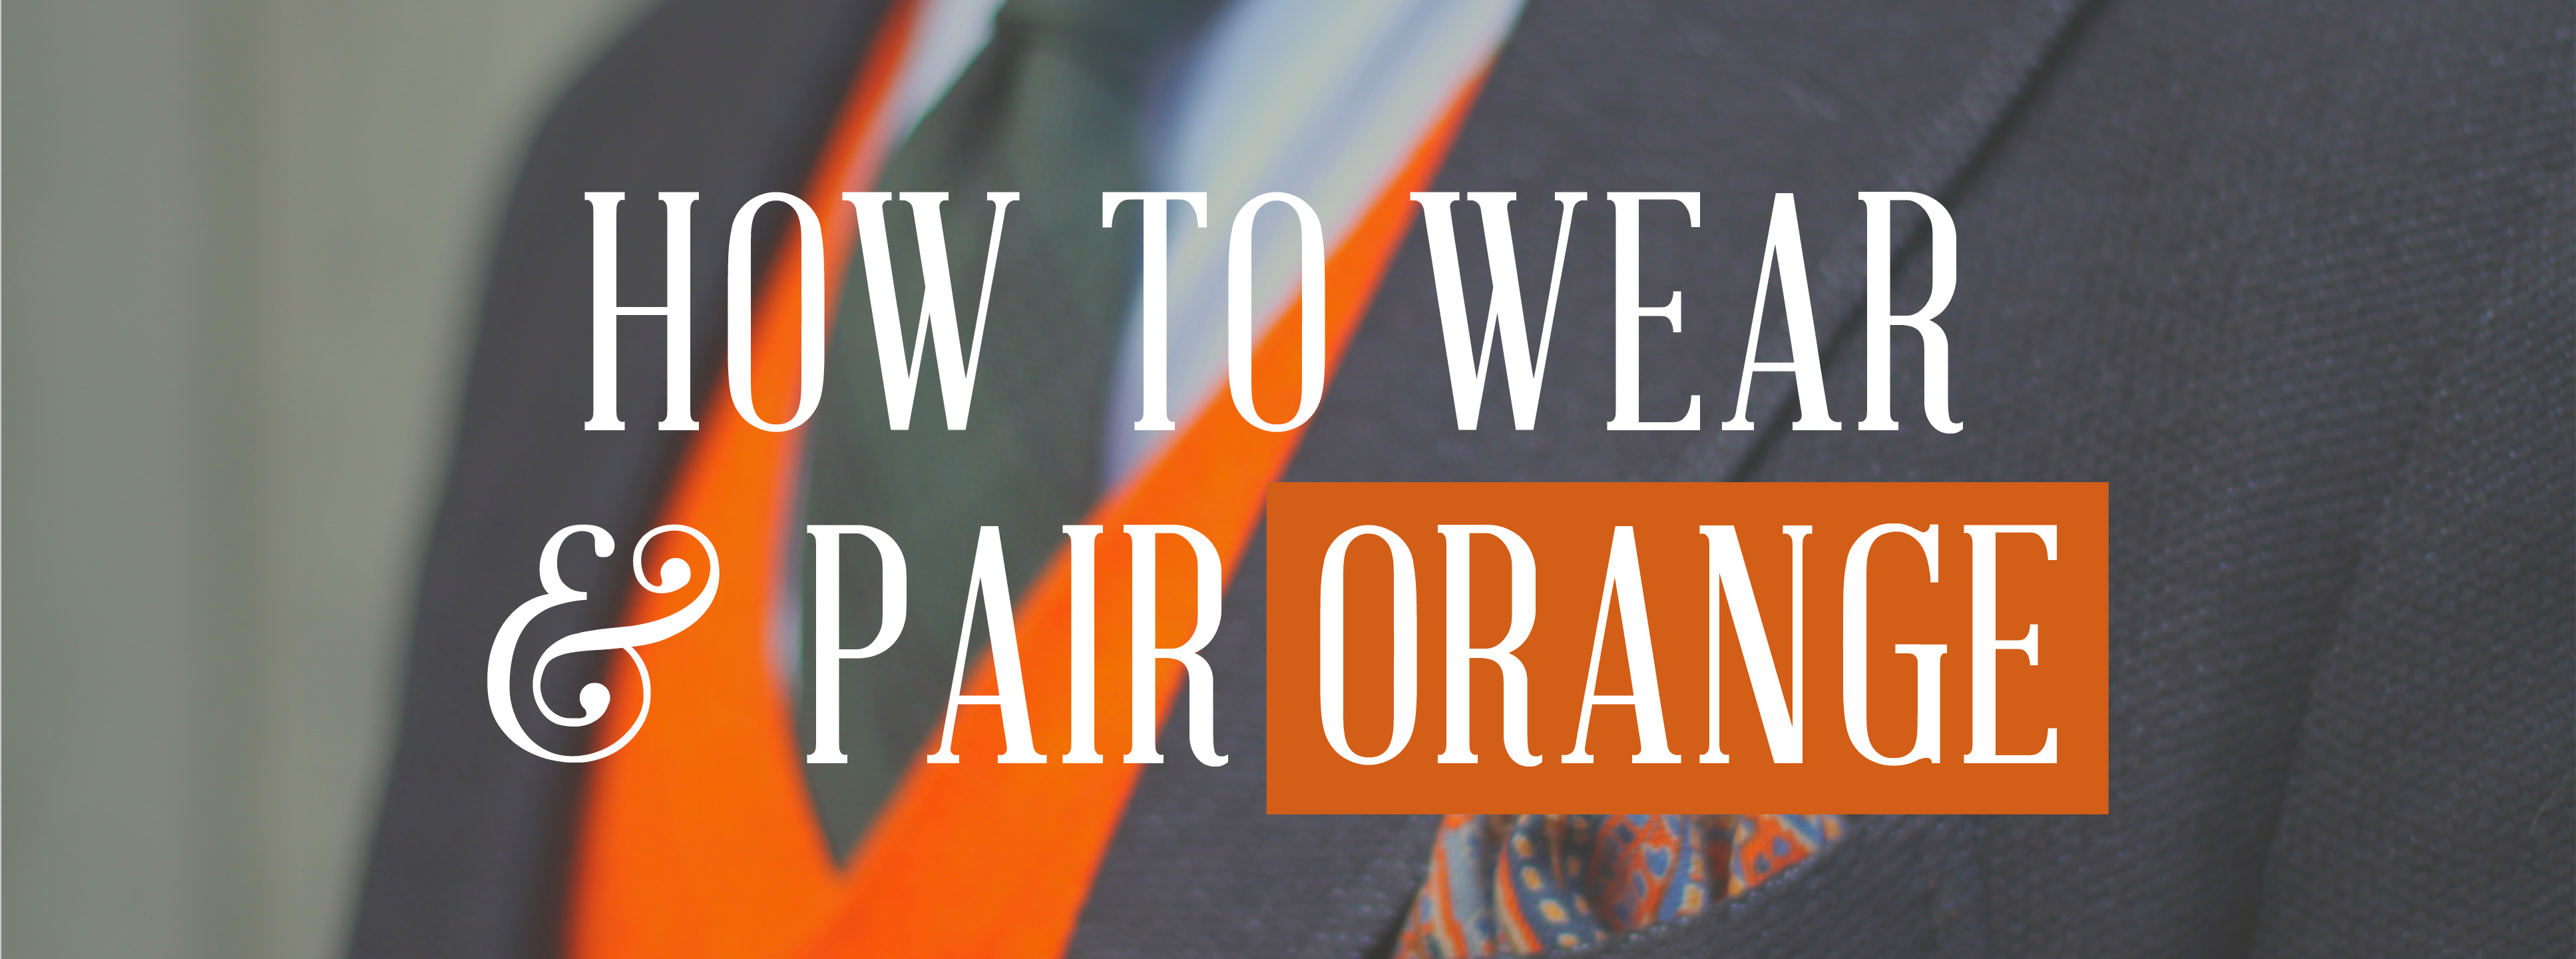 f83354dcf The Most Underrated Color in Menswear Part 2  Orange   How To Wear ...